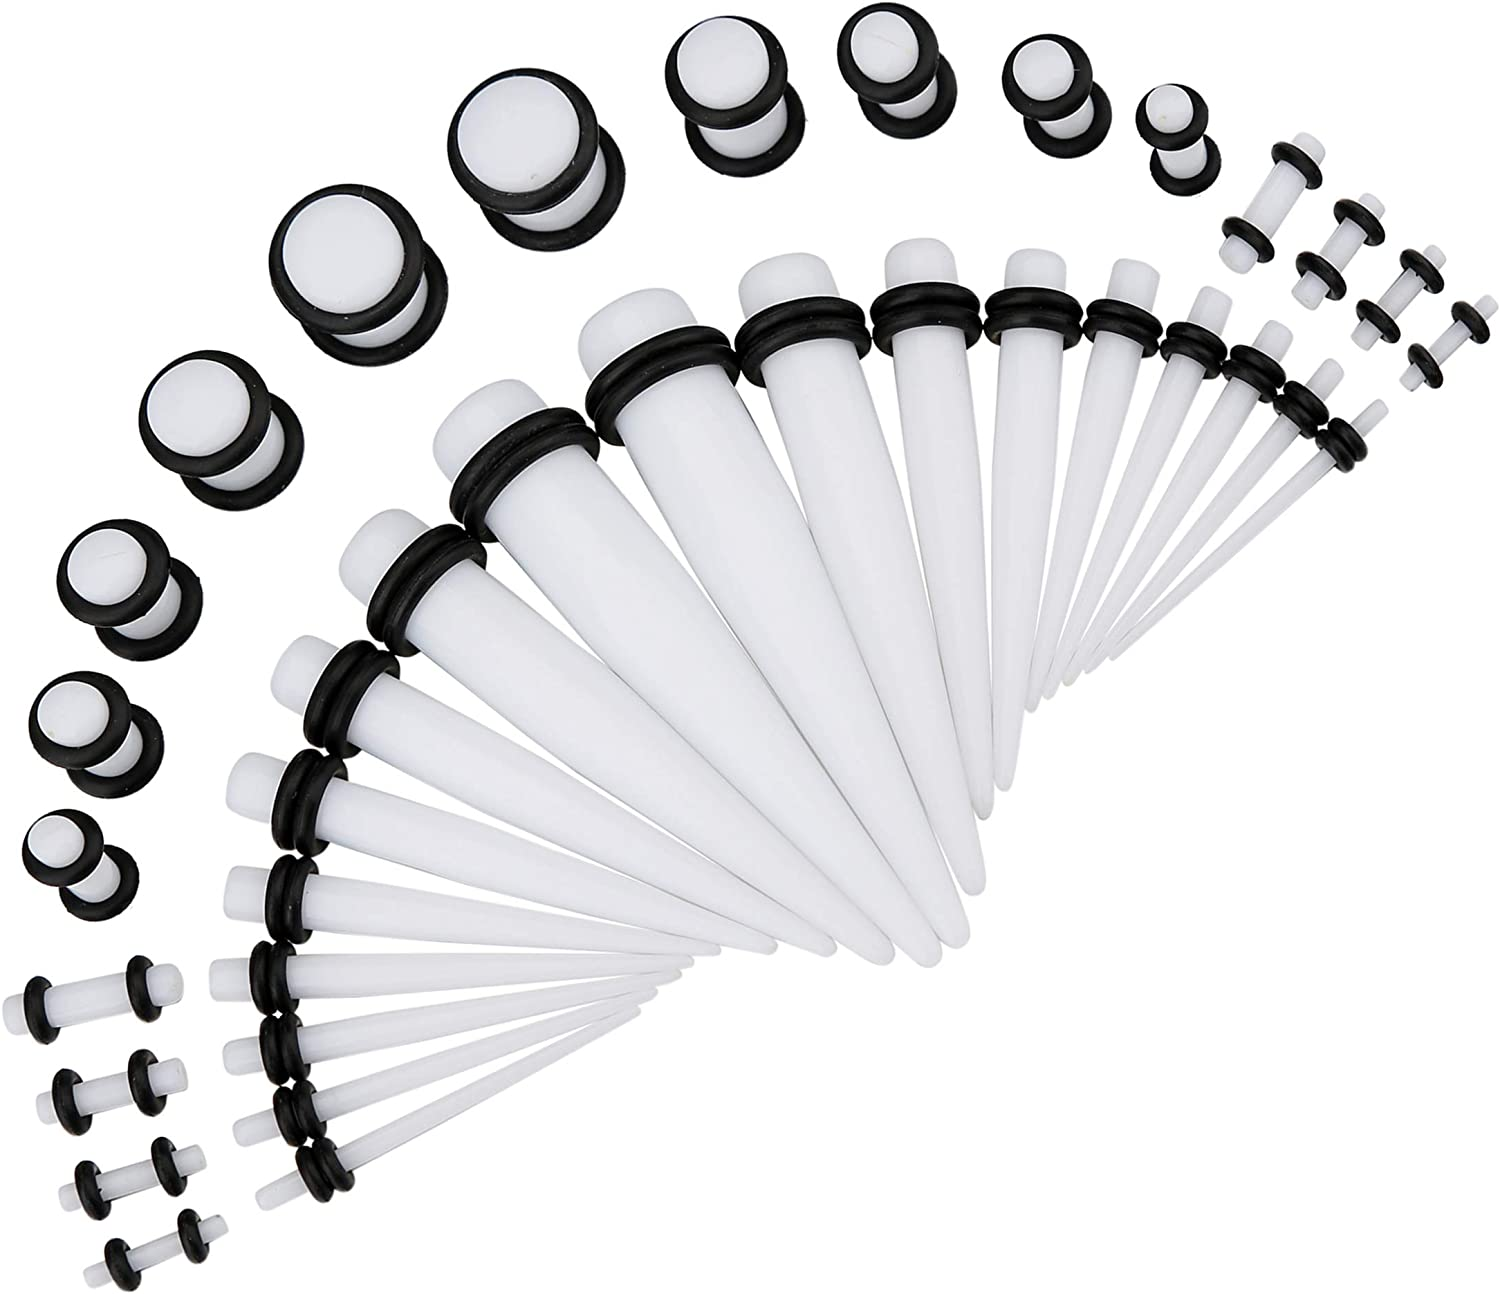 VILYWON 50Pcs Kit 14G-00G Ear Gauges Acrylic Tapers and Plugs Silicone Tunnels Set Body Piercing Jewelry Box